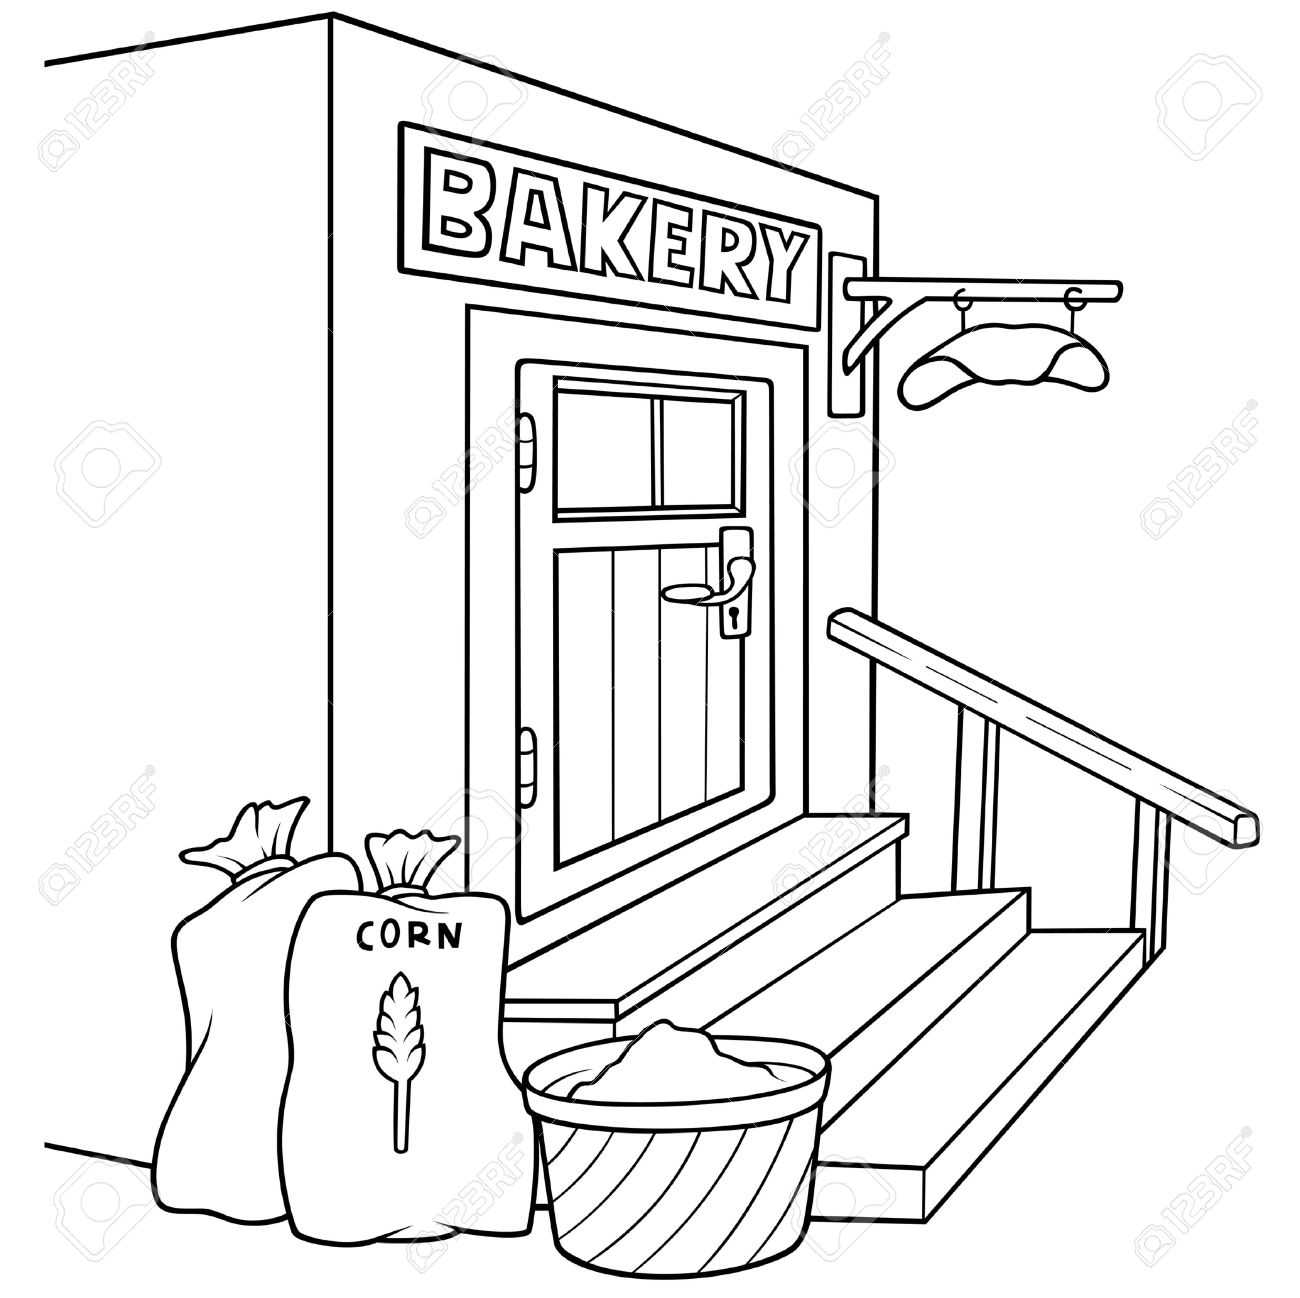 Bakery Clipart Bakery Transparent Free For Download On